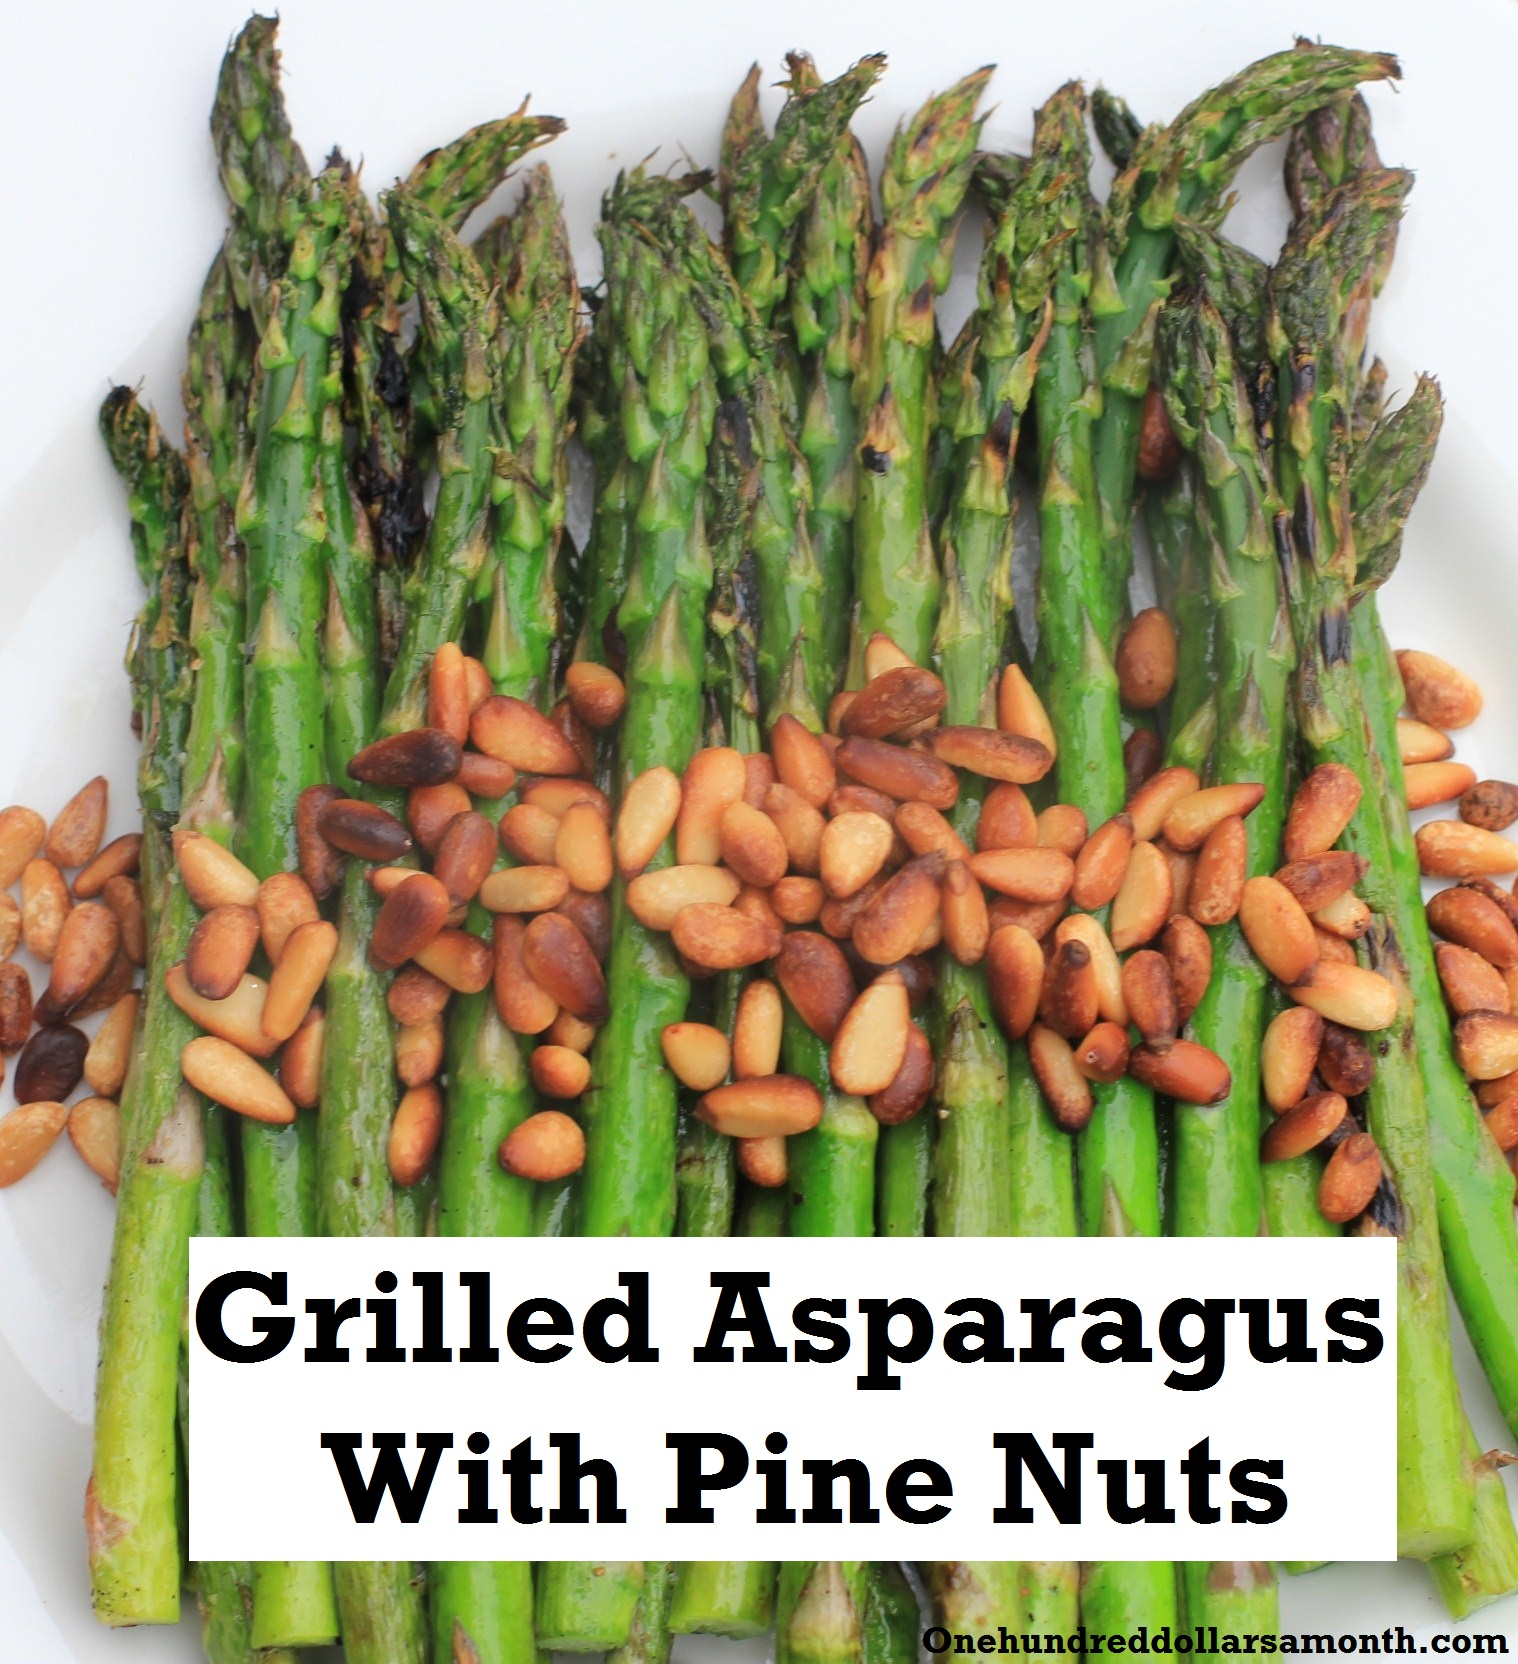 Recipe: Grilled Asparagus With Pine Nuts